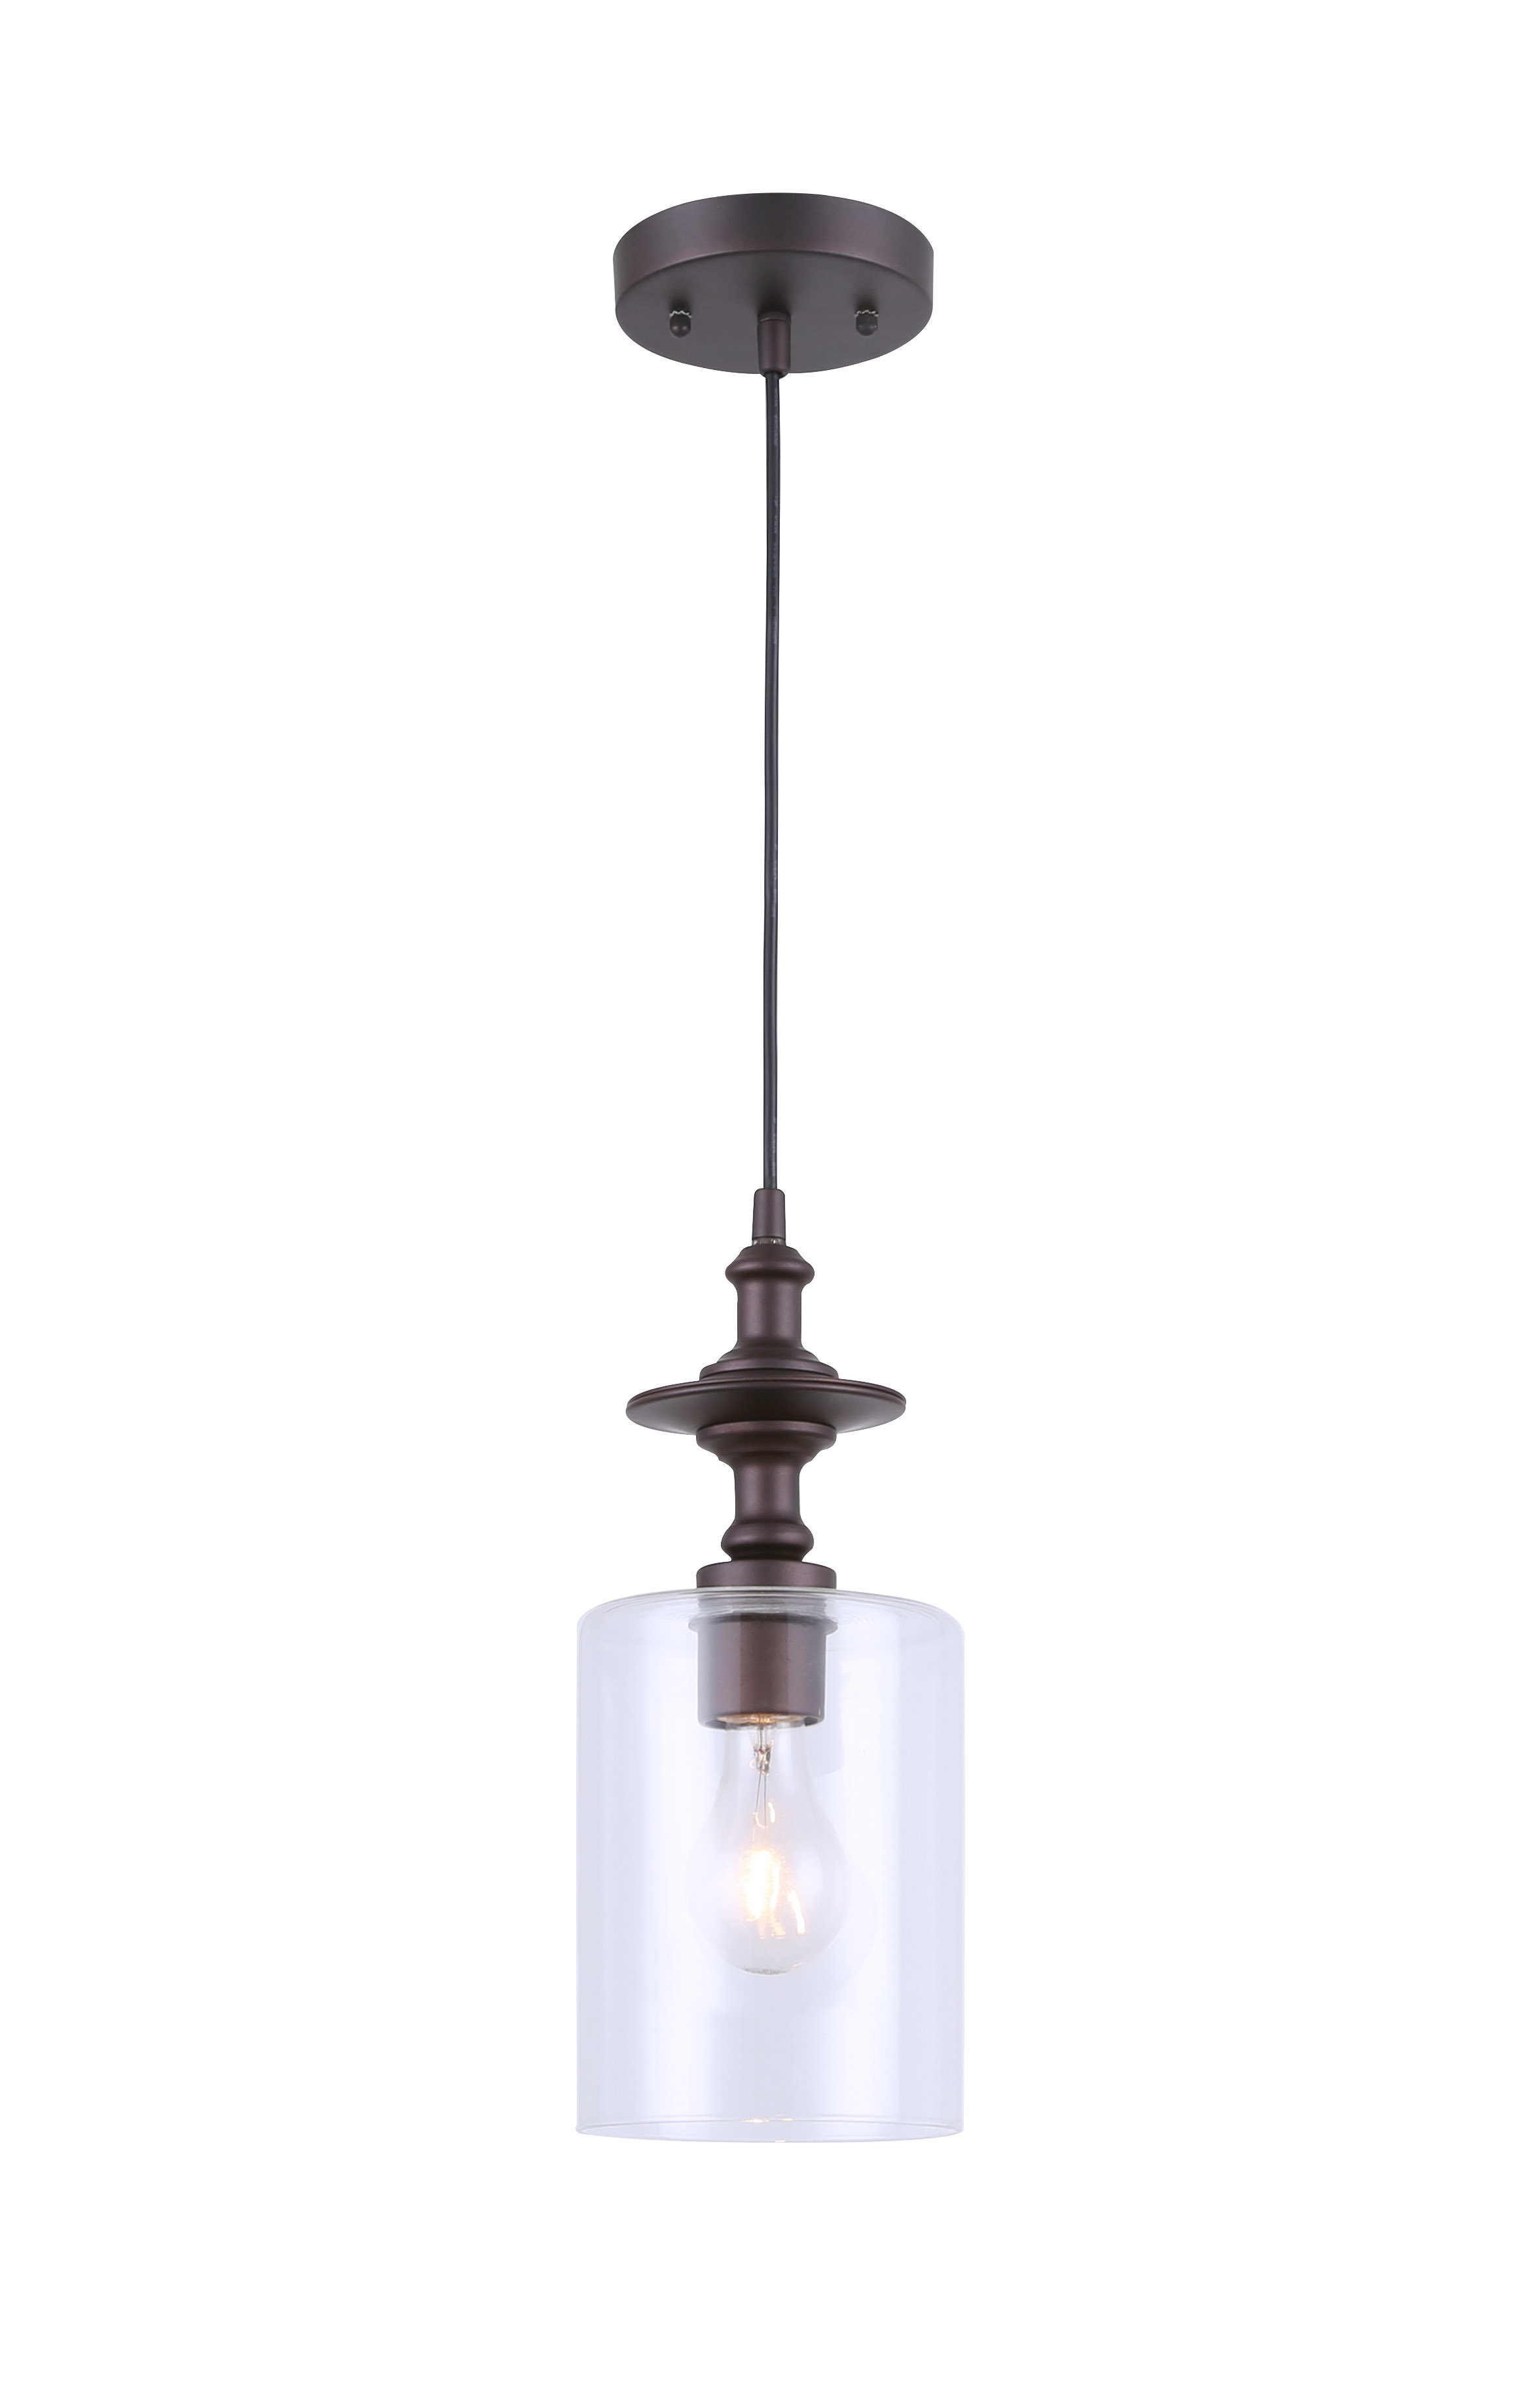 Moyer 1 Light Single Cylinder Pendant For 2019 Moyer 1 Light Single Cylinder Pendants (Gallery 1 of 20)